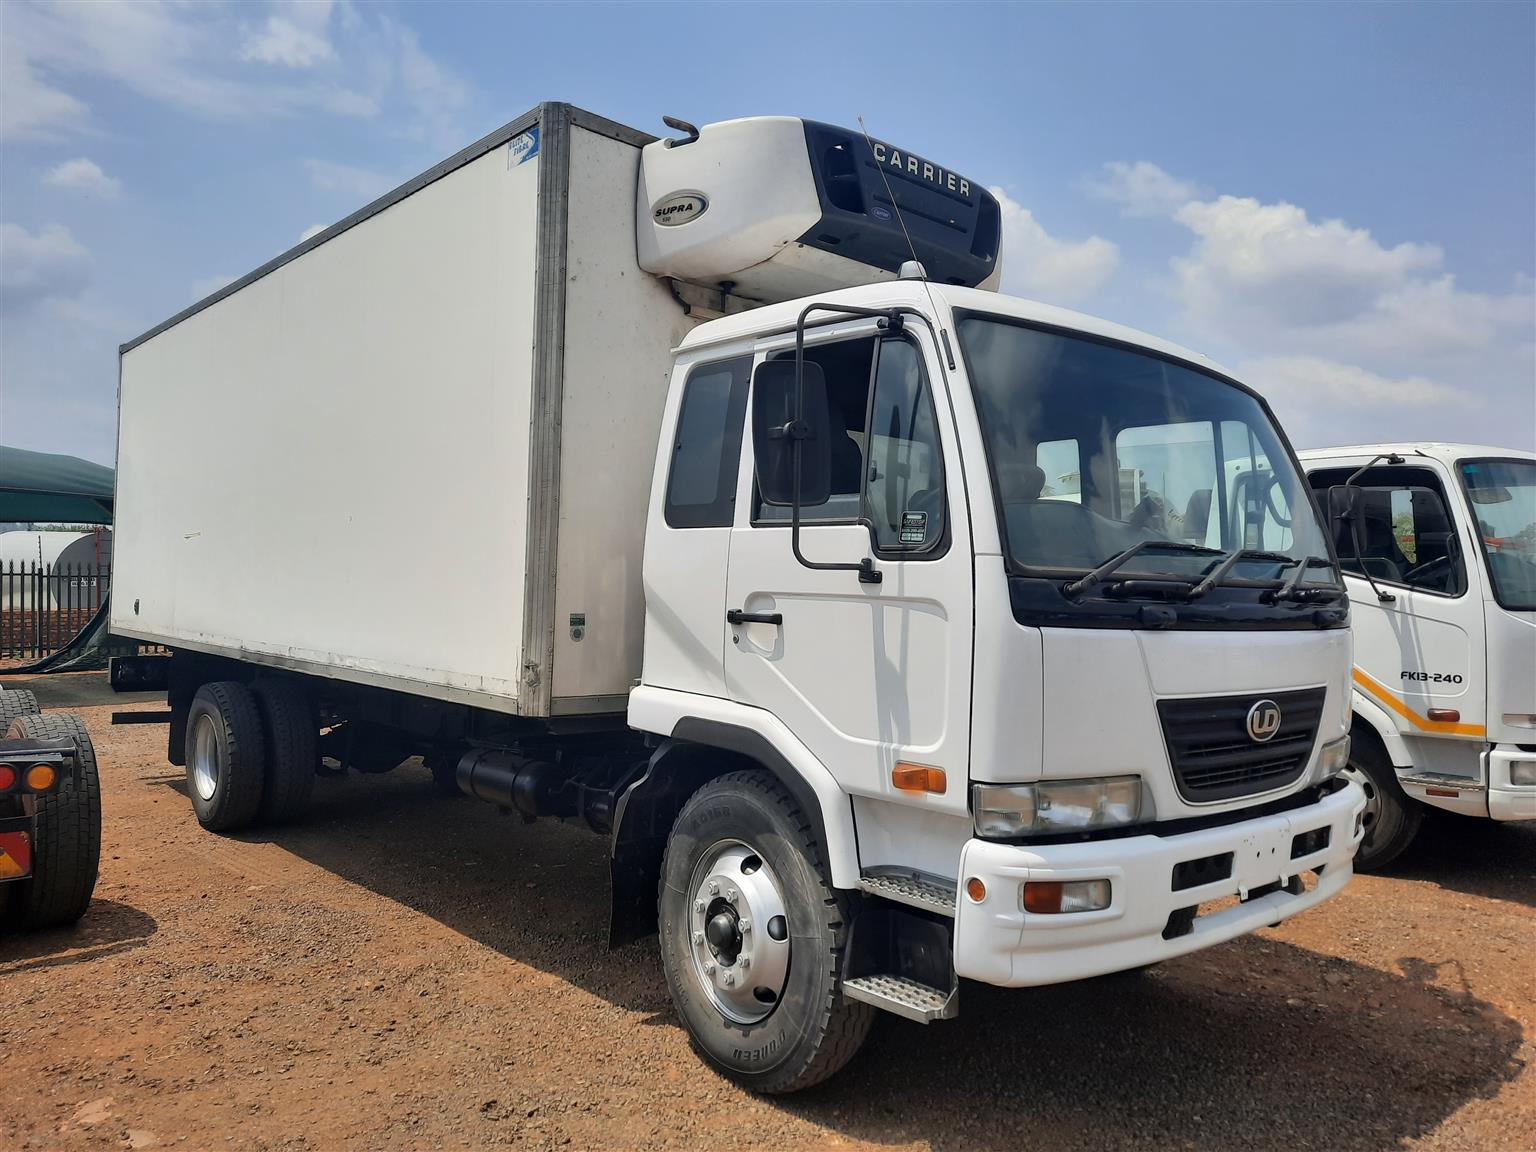 Nissan UD 90 fitted with insulated body and fridge truck